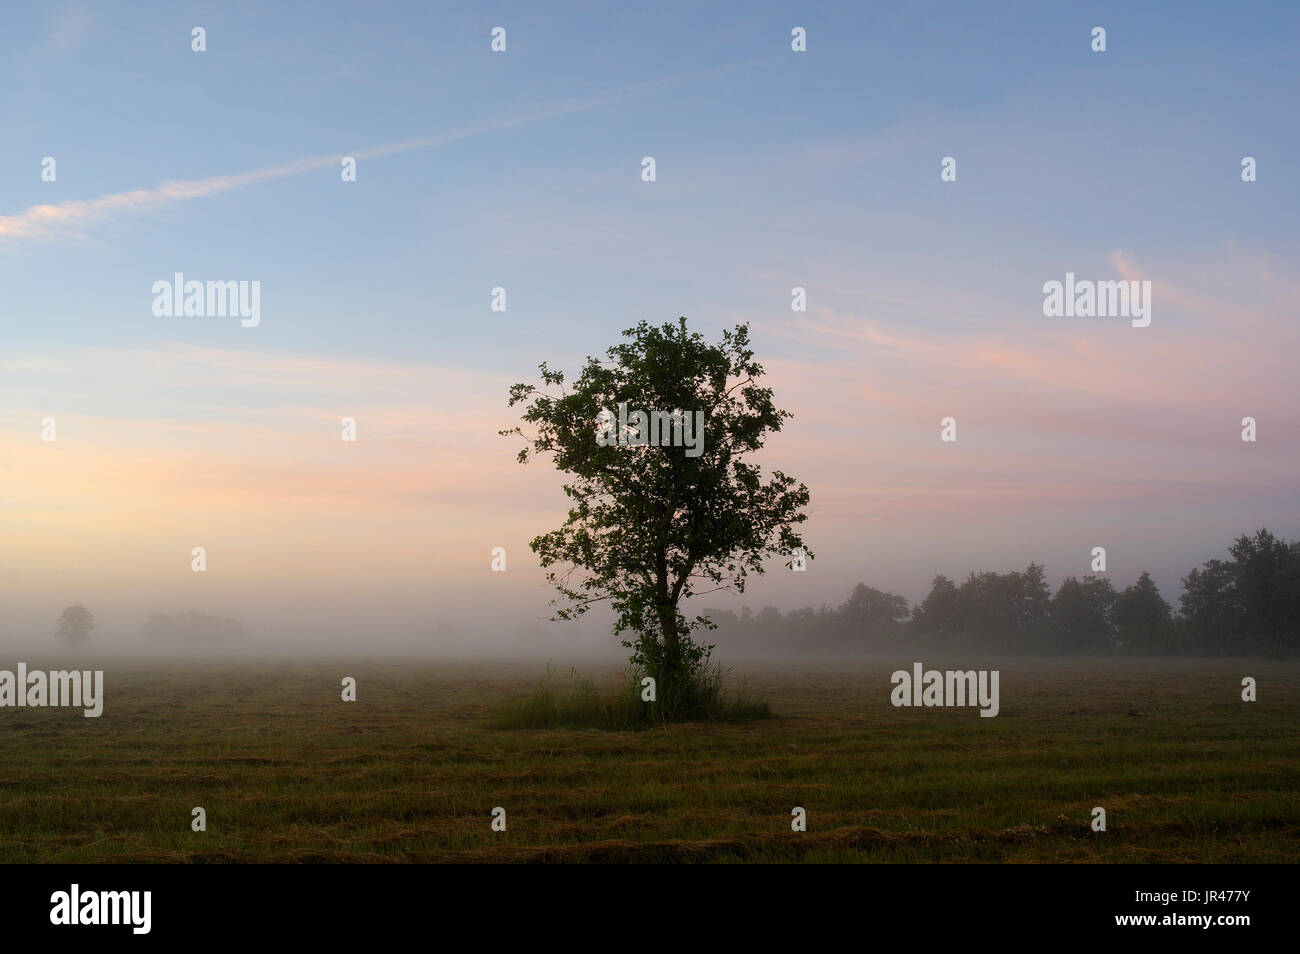 Early Morning Landscape of Matsalu National Park. Estonia 27th July 2017 - Stock Image